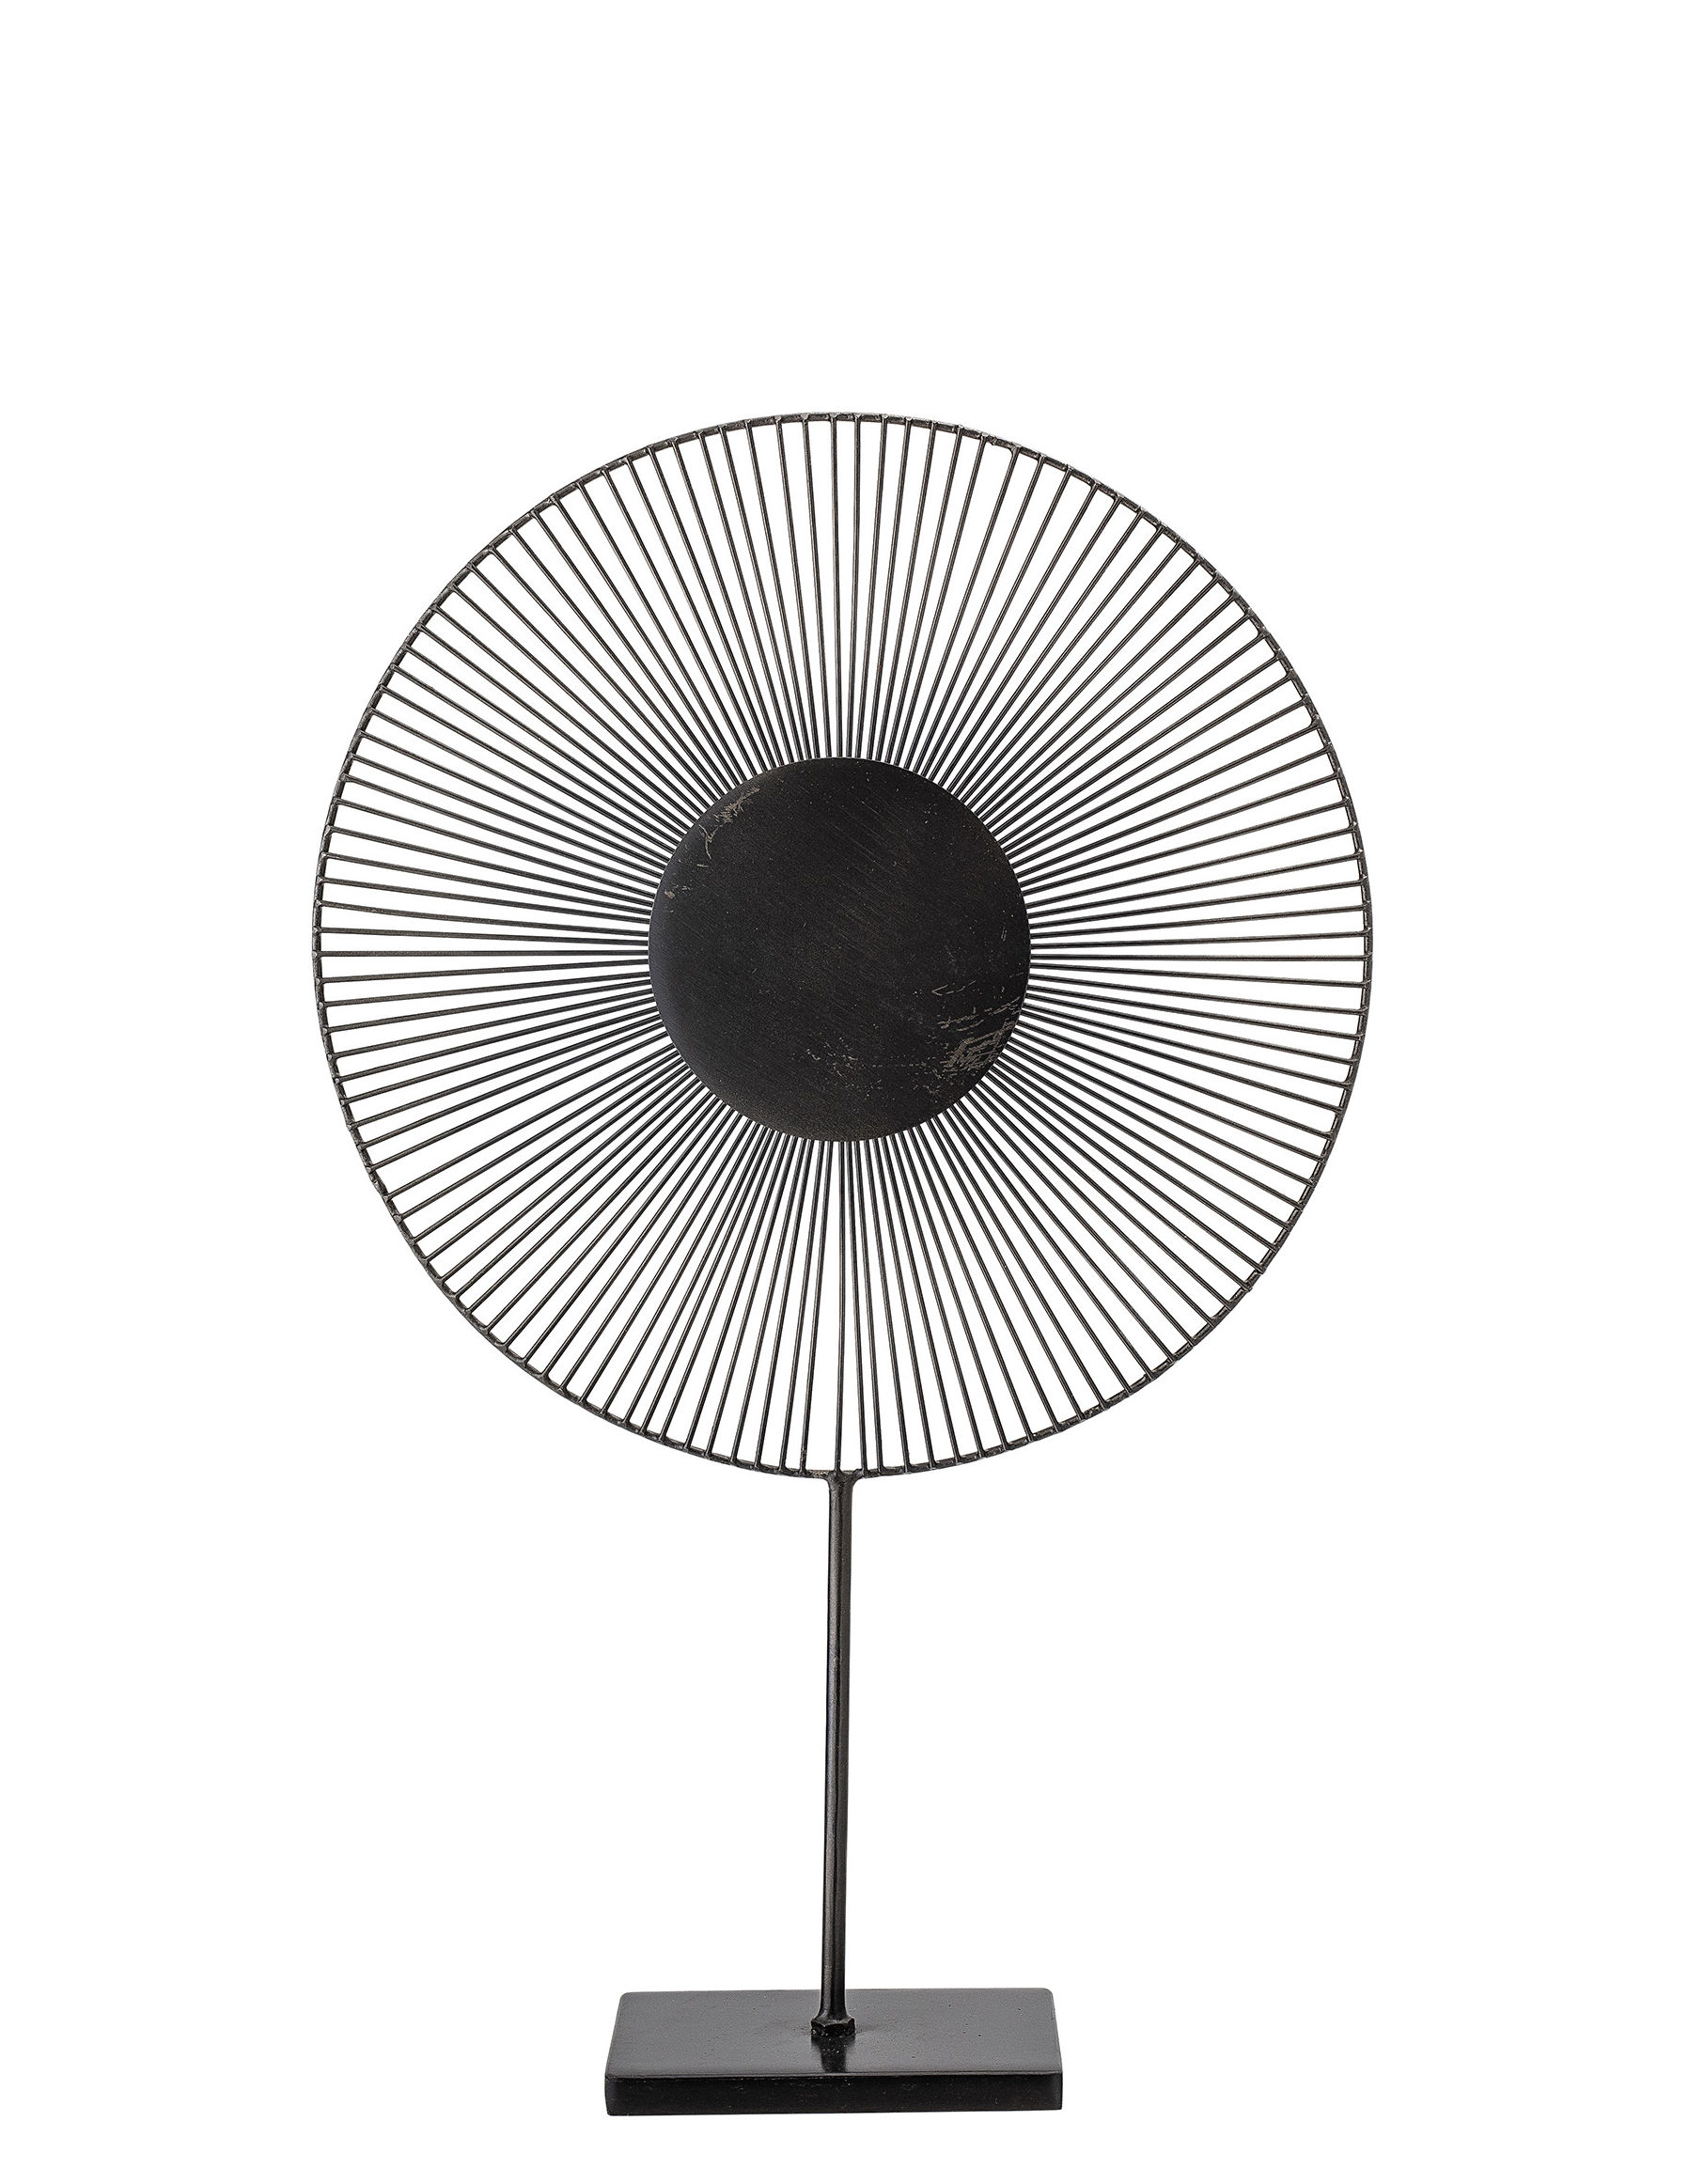 Decoration - Home Accessories - Decoration - / Metal by Bloomingville - Black - Metal